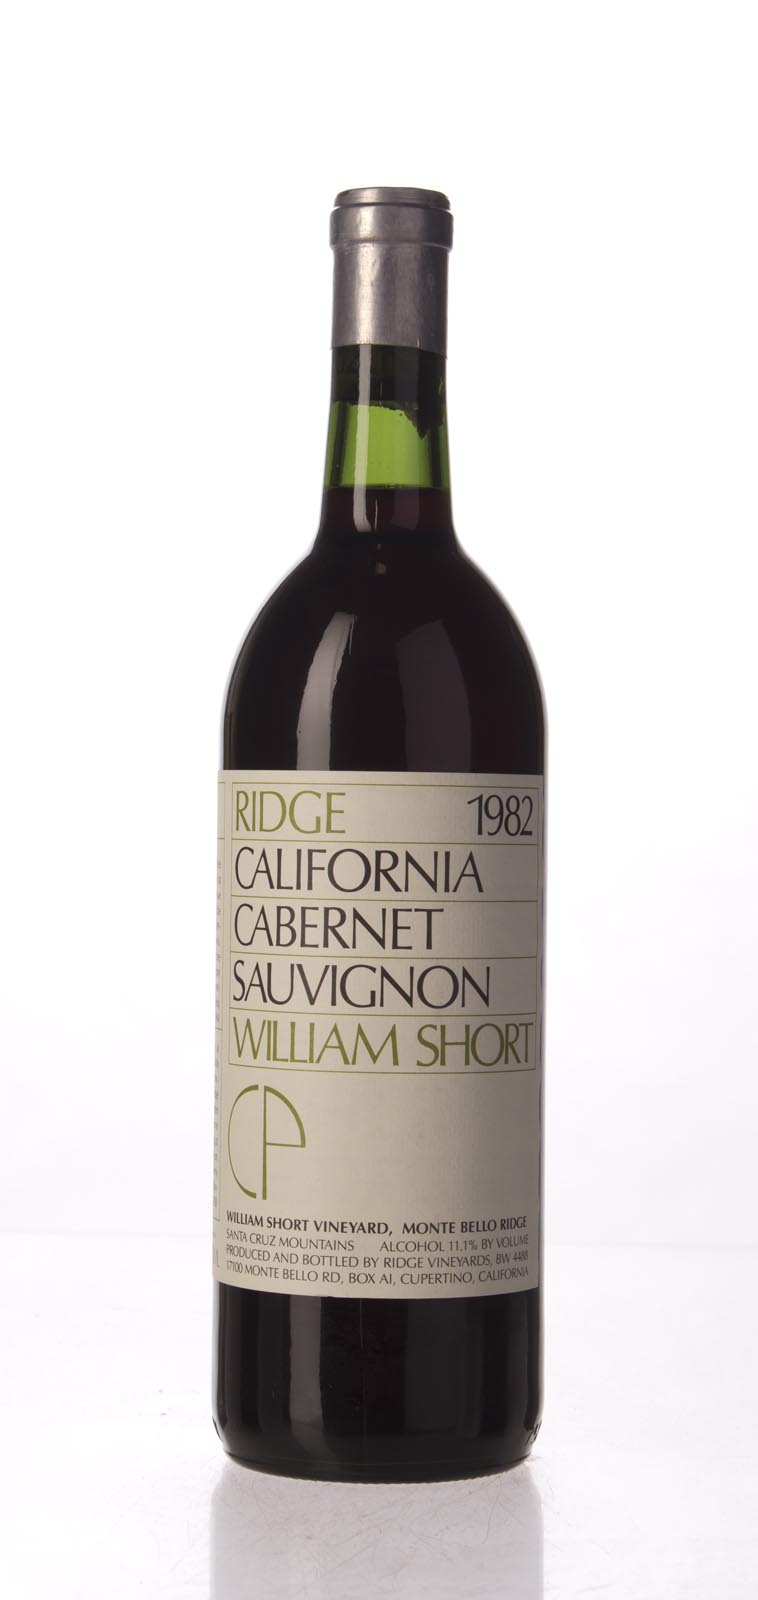 Ridge Cabernet Sauvignon William Short Vineyard 1982, 750mL () from The BPW - Merchants of rare and fine wines.